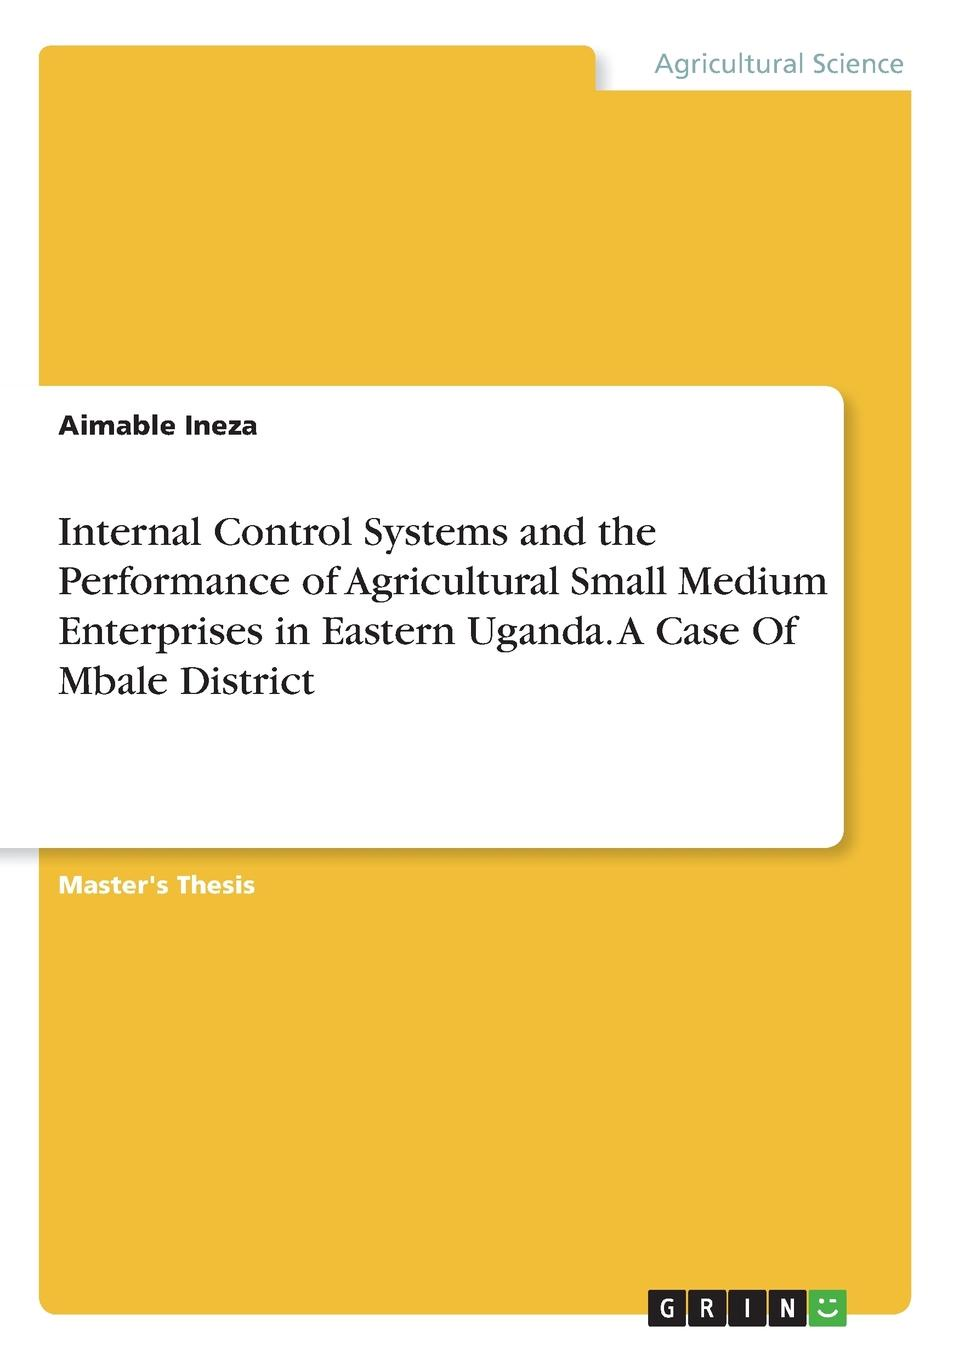 Aimable Ineza Internal Control Systems and the Performance of Agricultural Small Medium Enterprises in Eastern Uganda. A Case Of Mbale District socio economic determinants of performance of smes